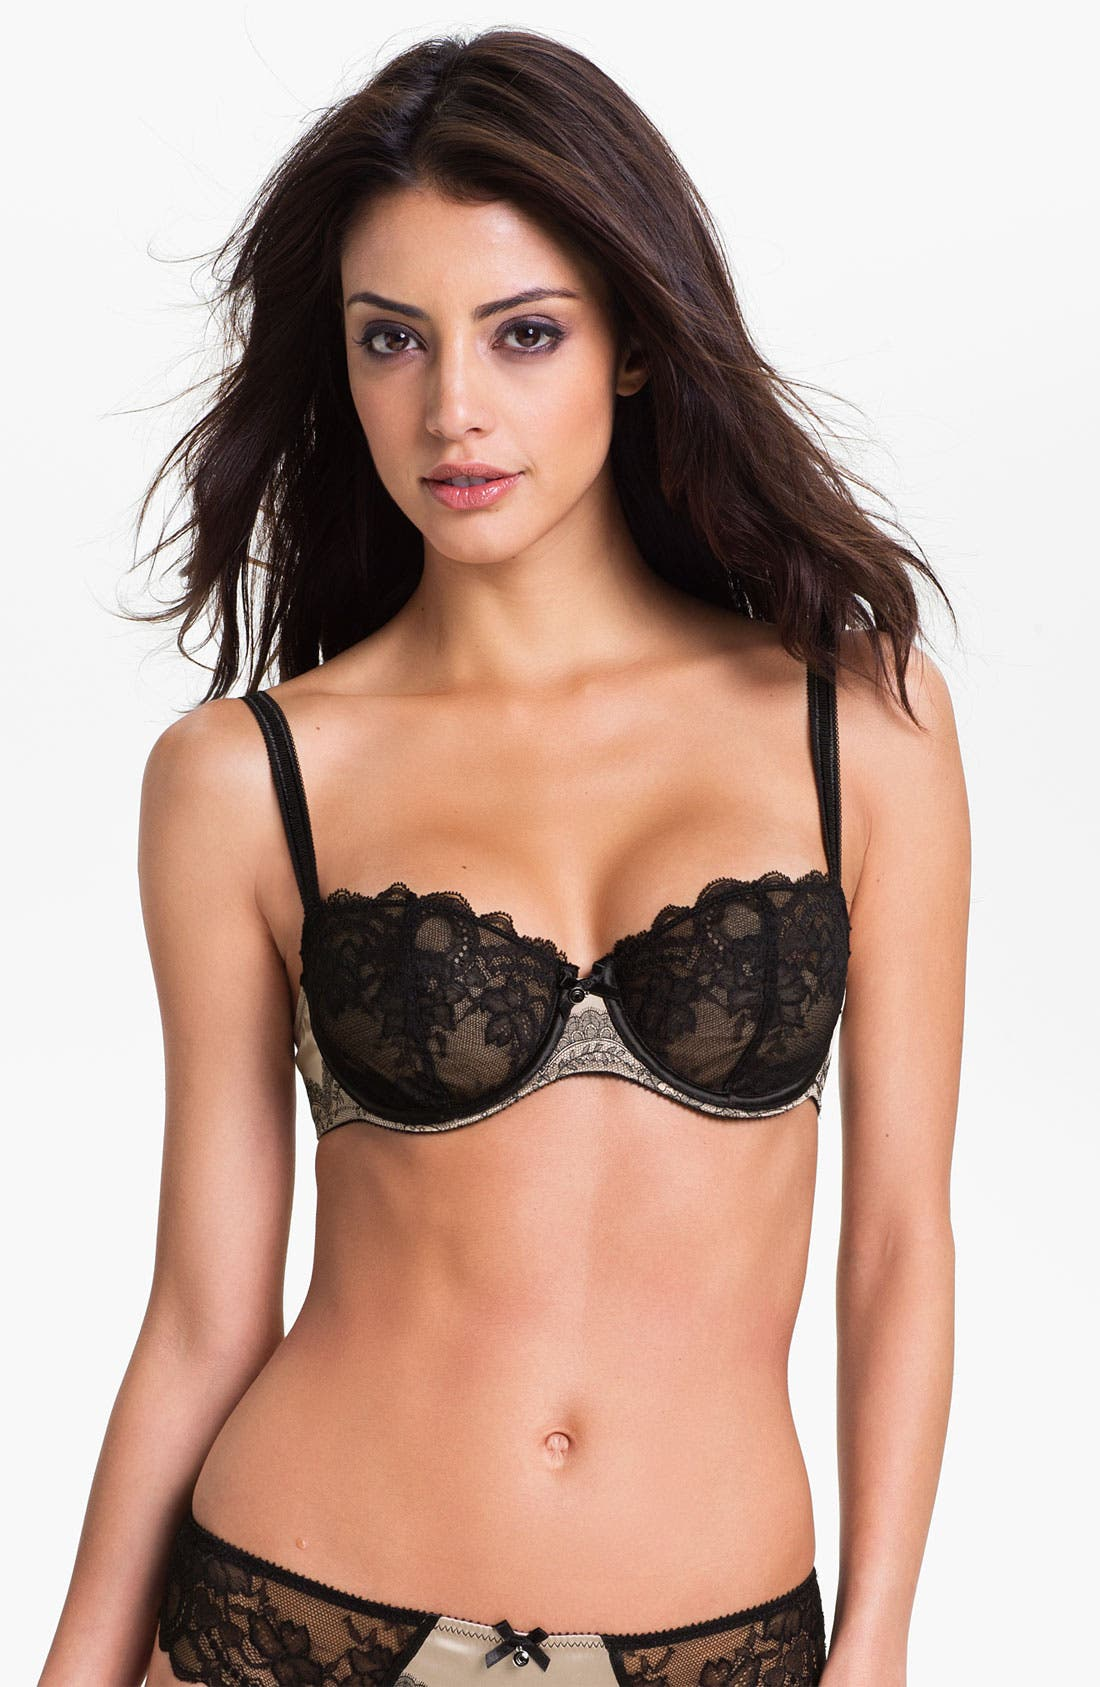 Alternate Image 1 Selected - Chantelle Intimates 'Paris Paris' Underwire Demi Bra